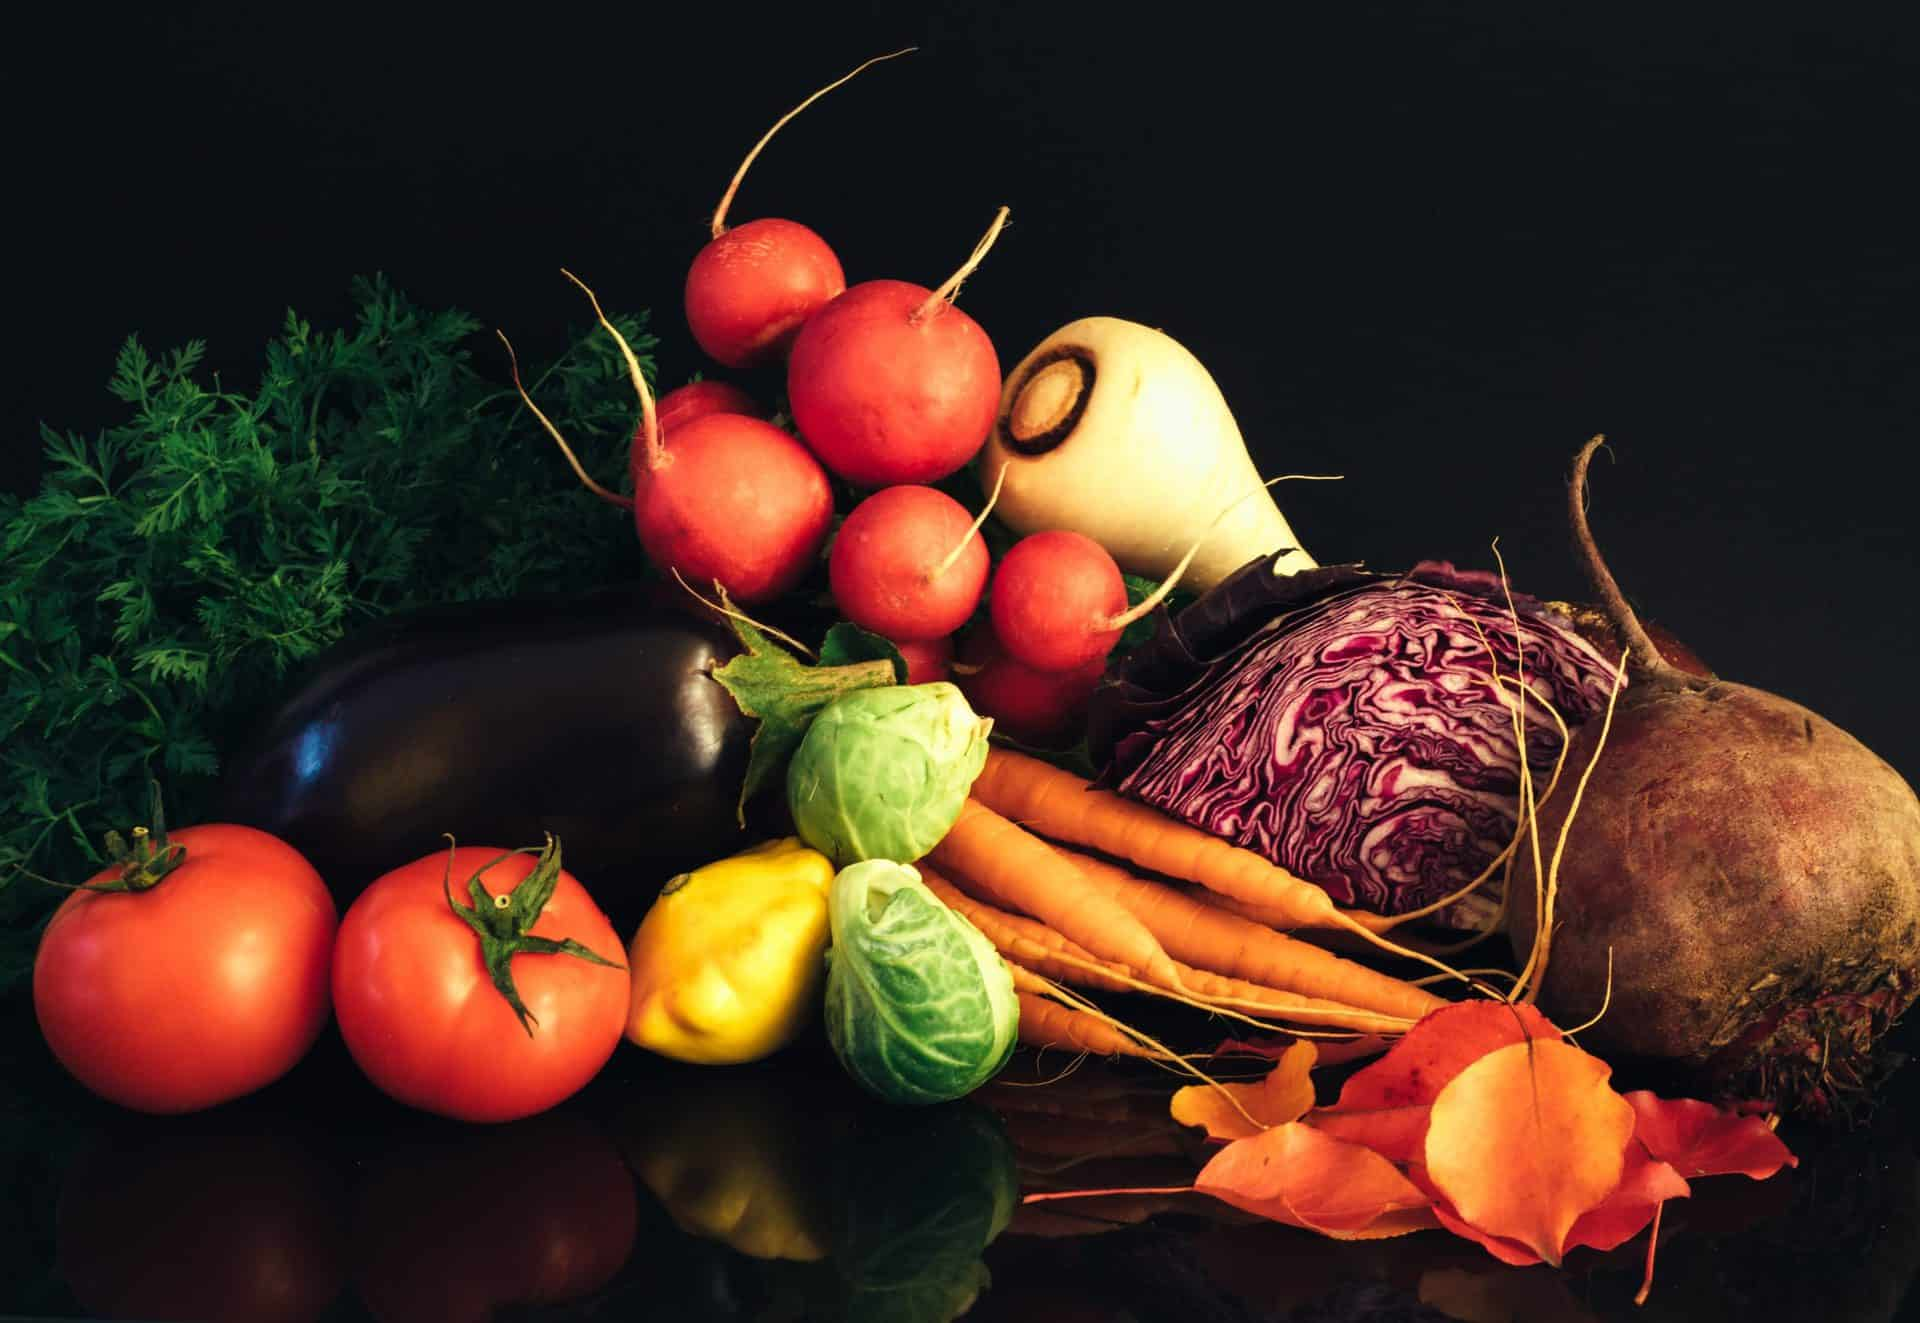 Variety-of-vegetables-on-table